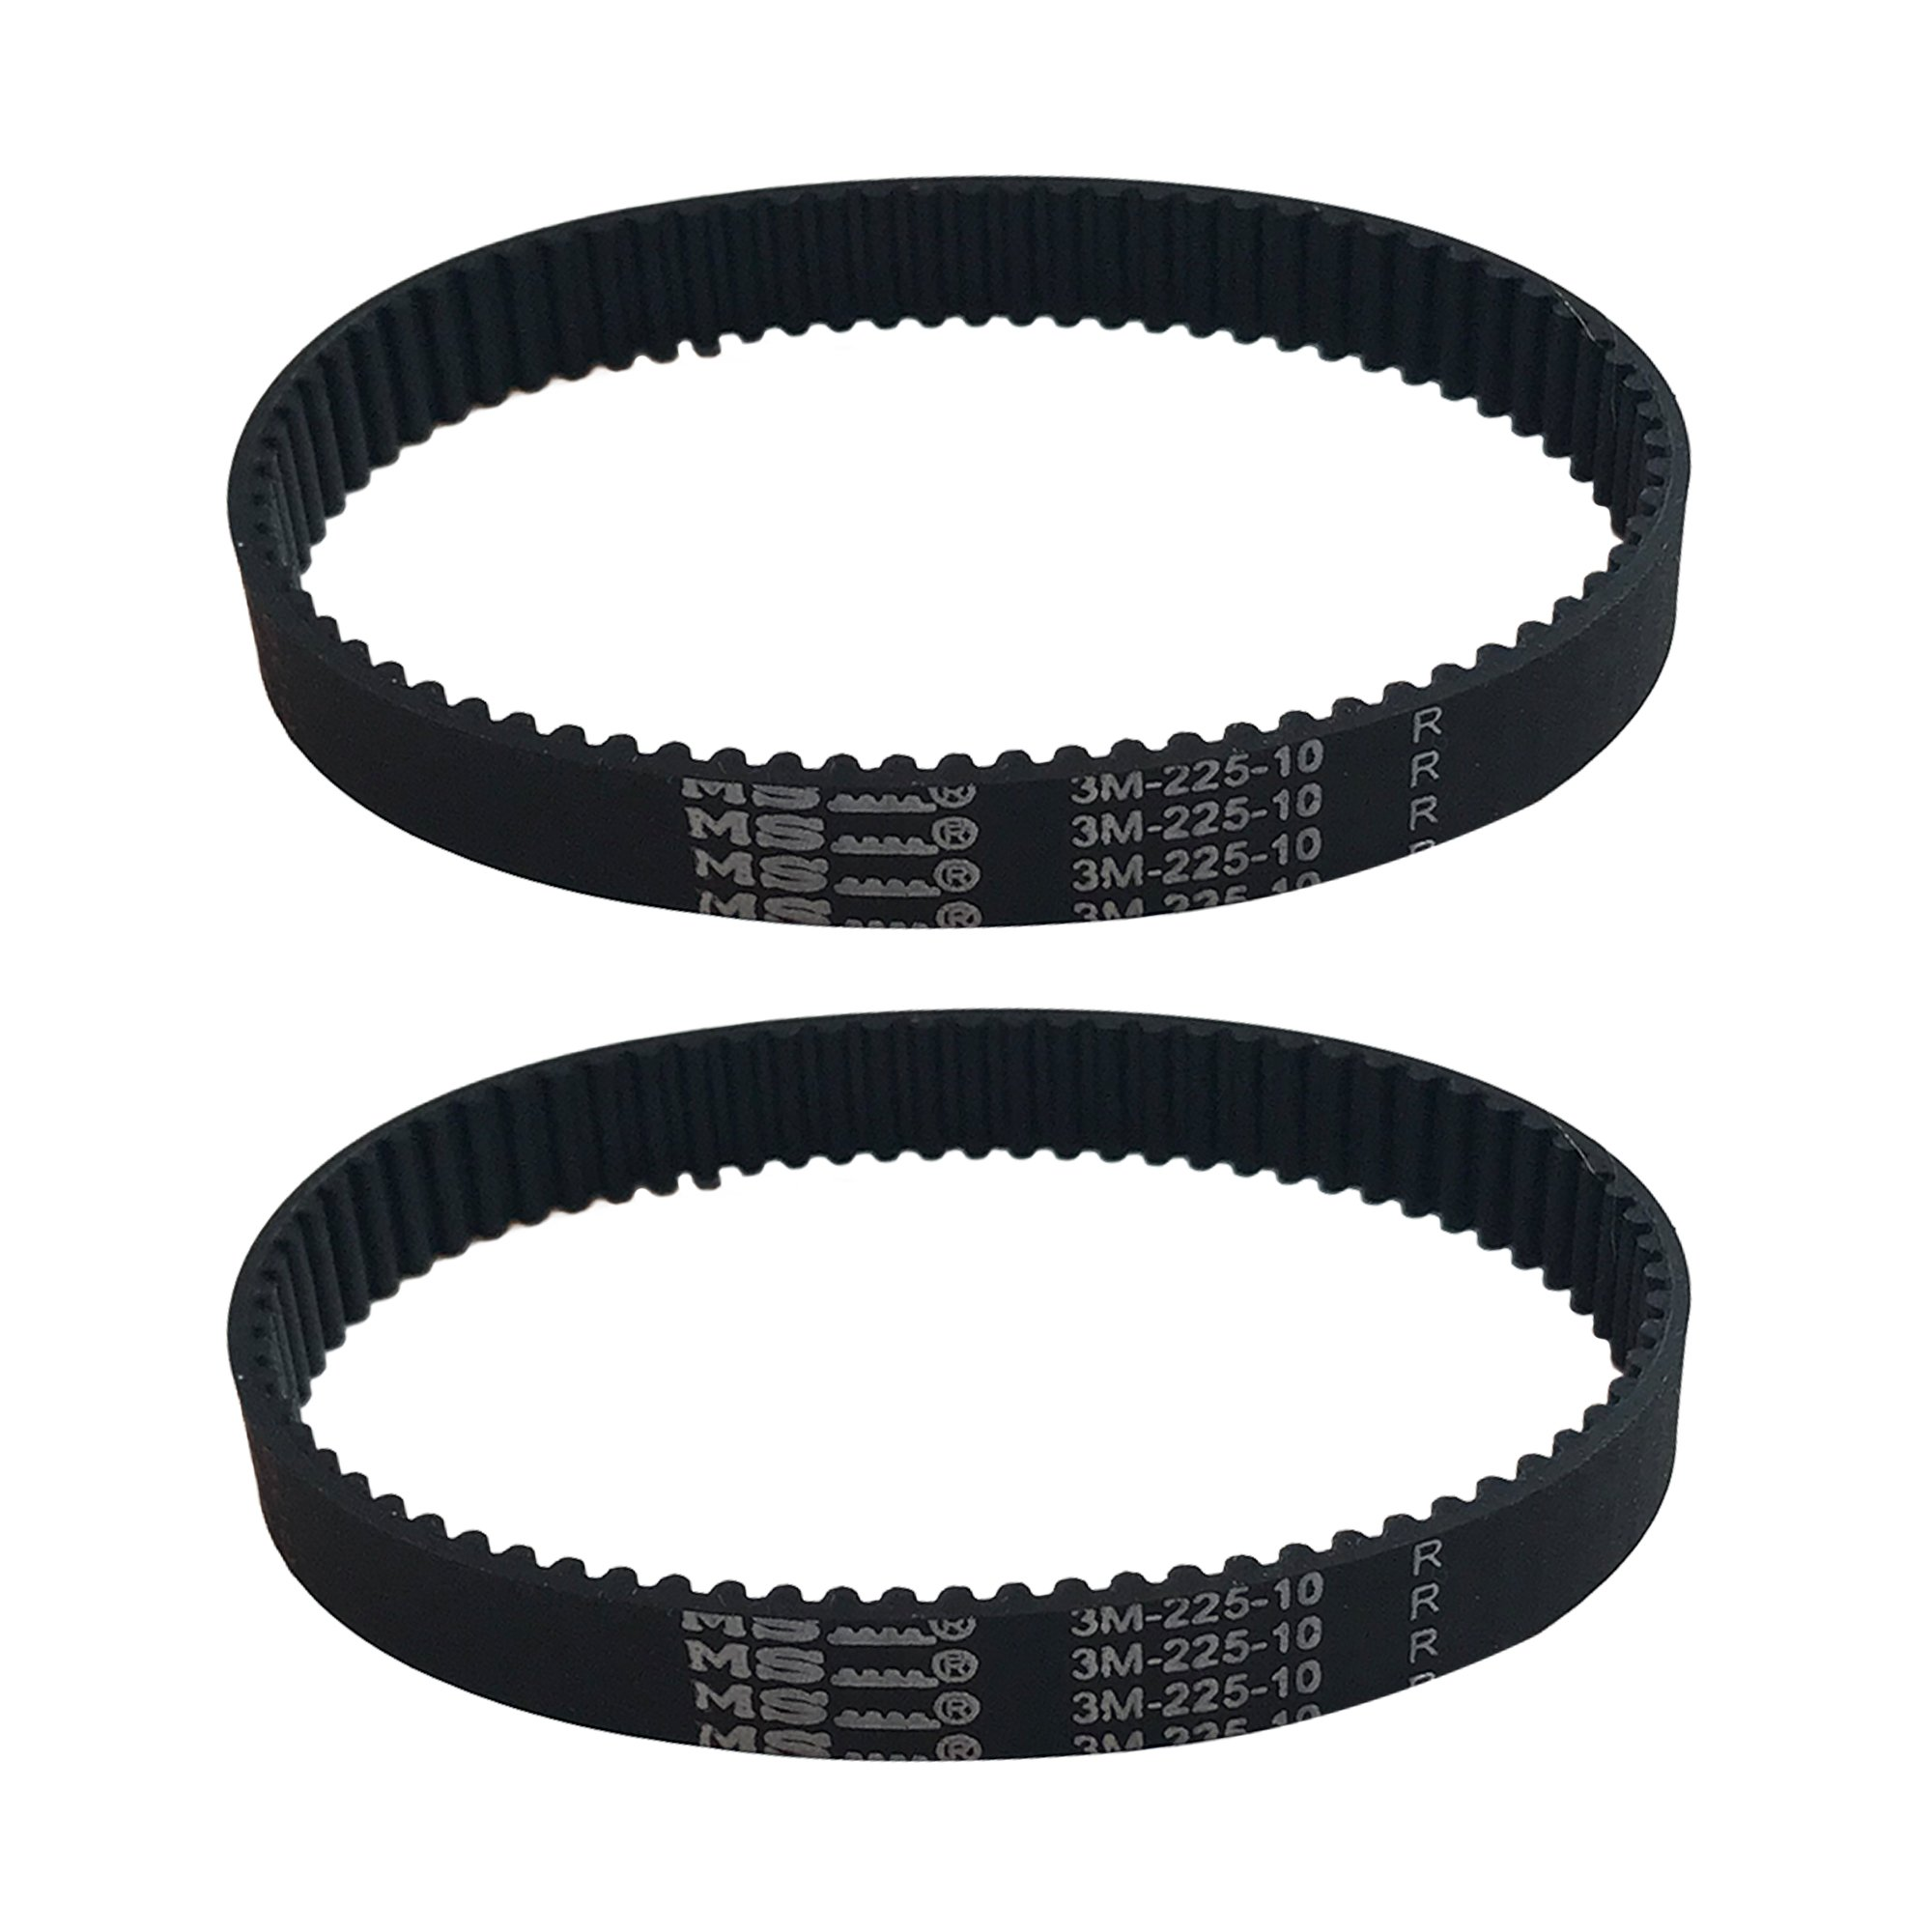 Think Crucial 2 Replacement for Dyson DC17 10-MM Geared Belts, Compatible With Part # 911710-01 & 91171001 by Crucial Vacuum